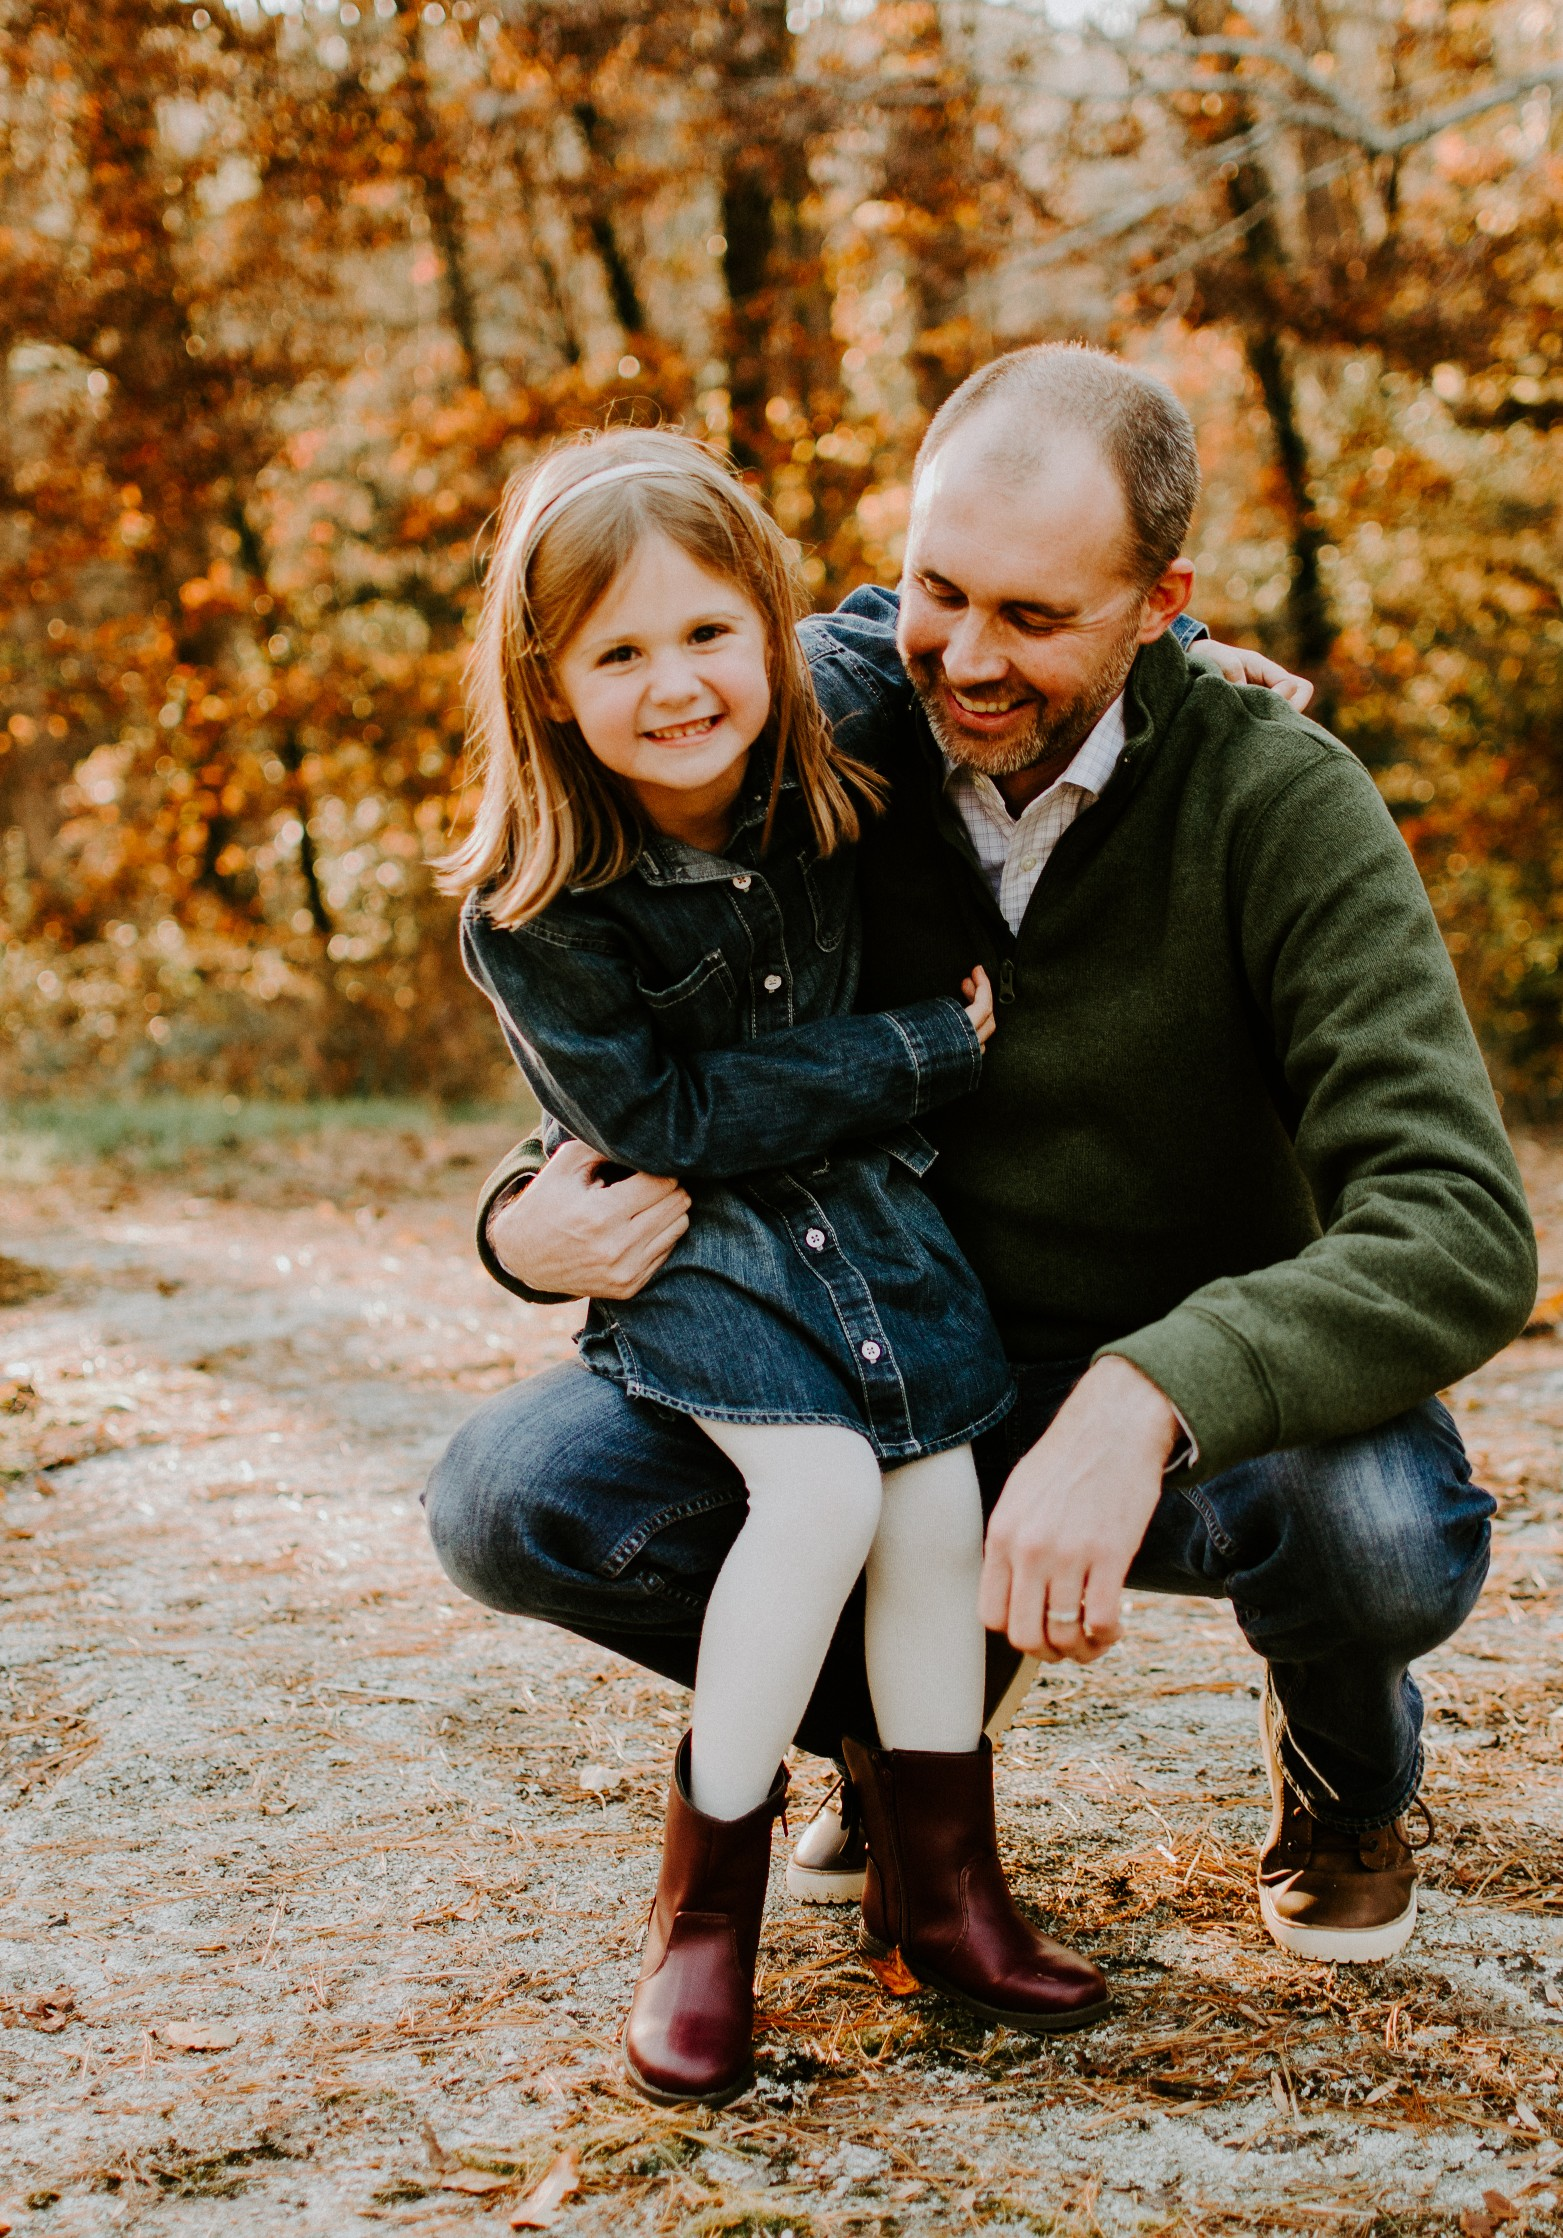 daddy-daughter-portrait-photography.jpg.